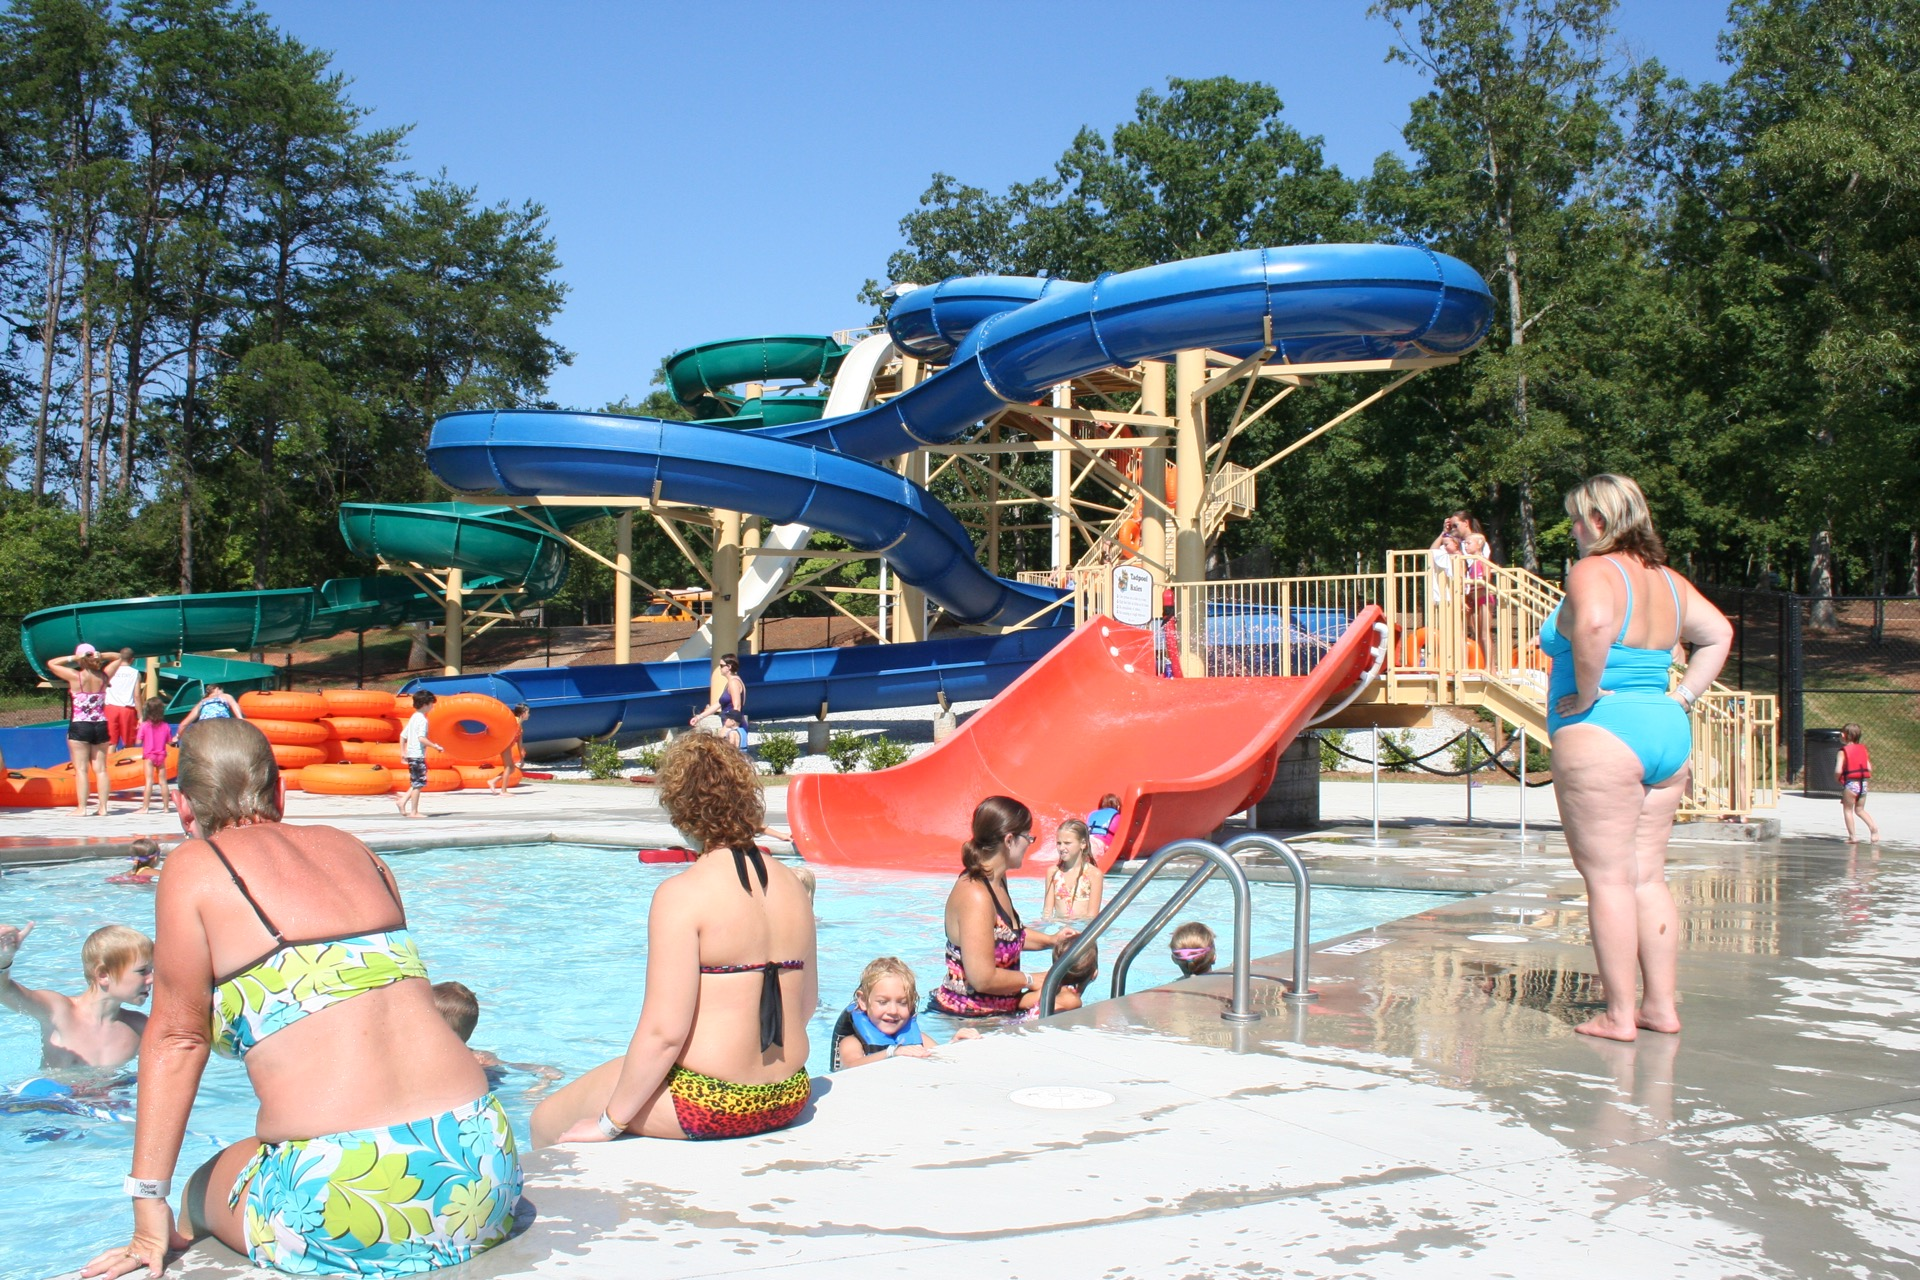 people enjoying a waterpark